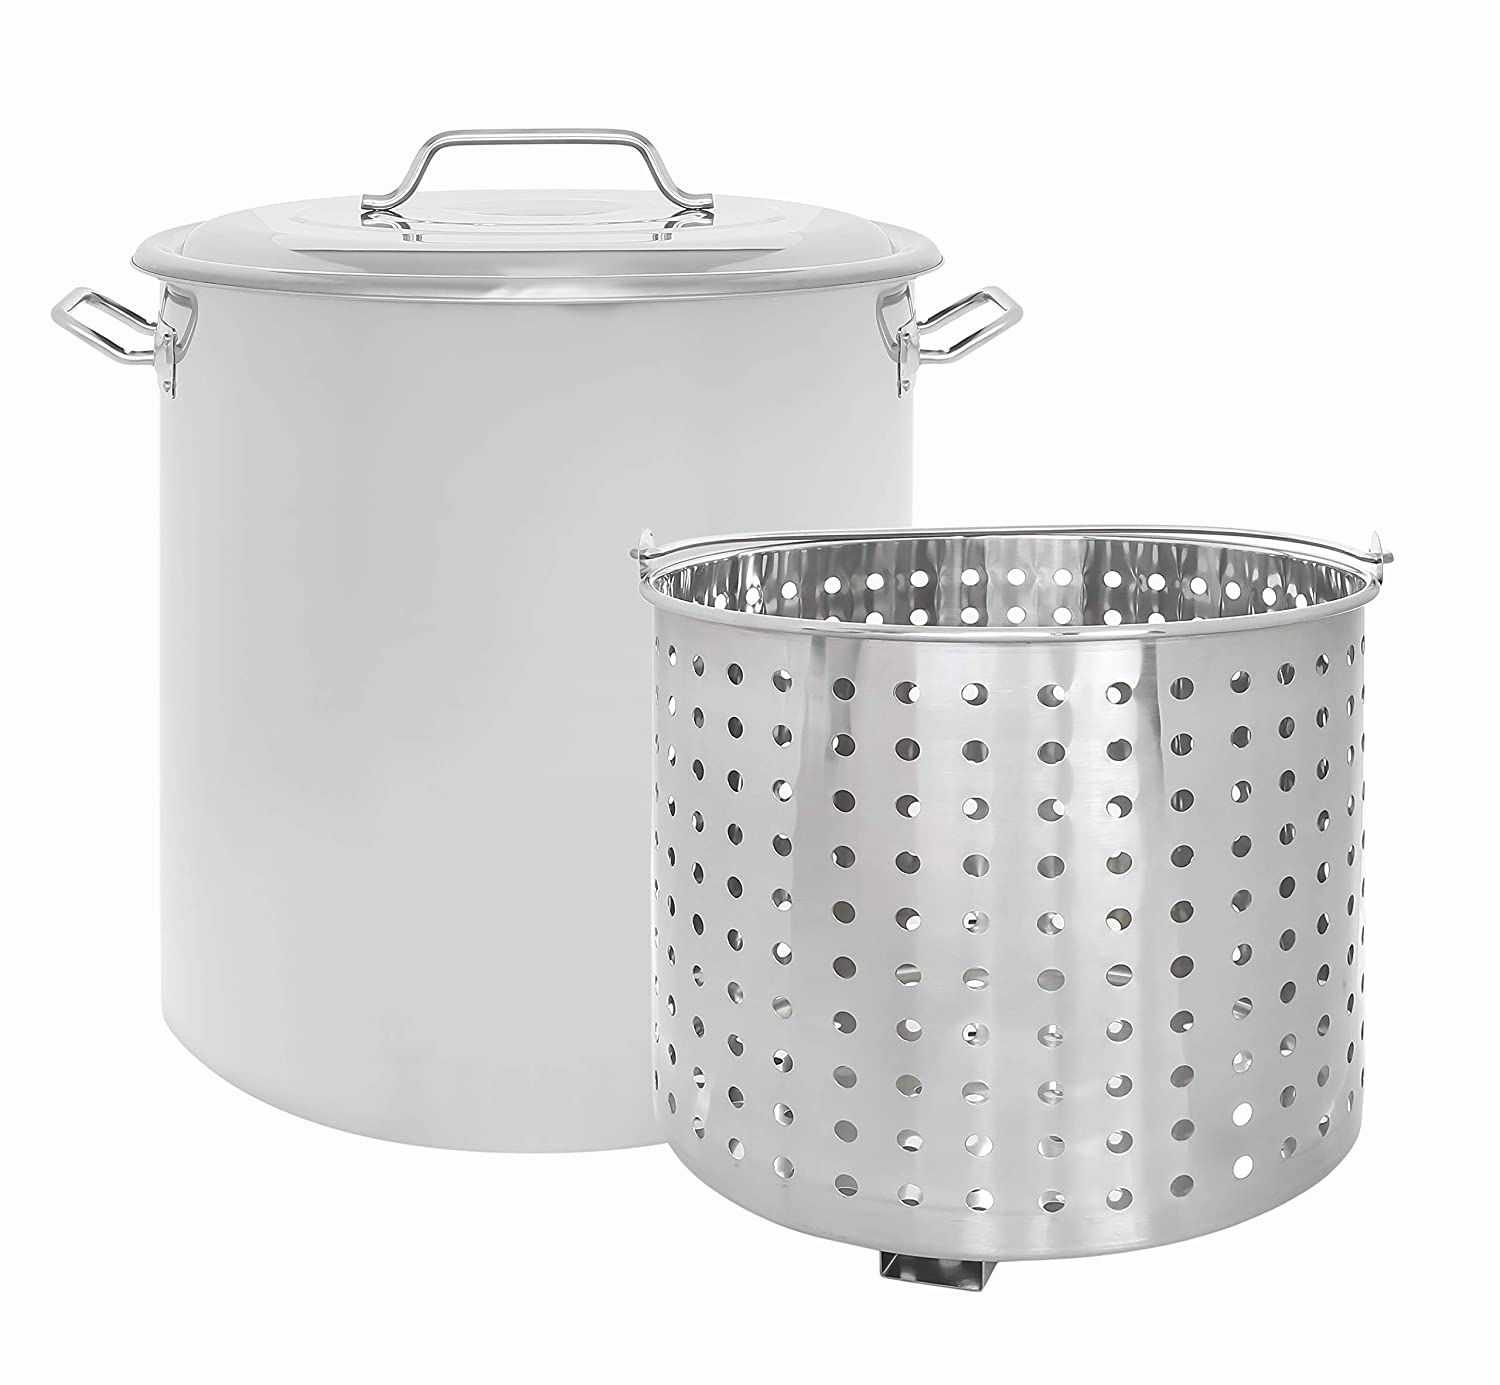 CONCORD Stainless Steel Stock Pot w/Steamer Basket. Cookware great for boiling and steaming (40 Quart)